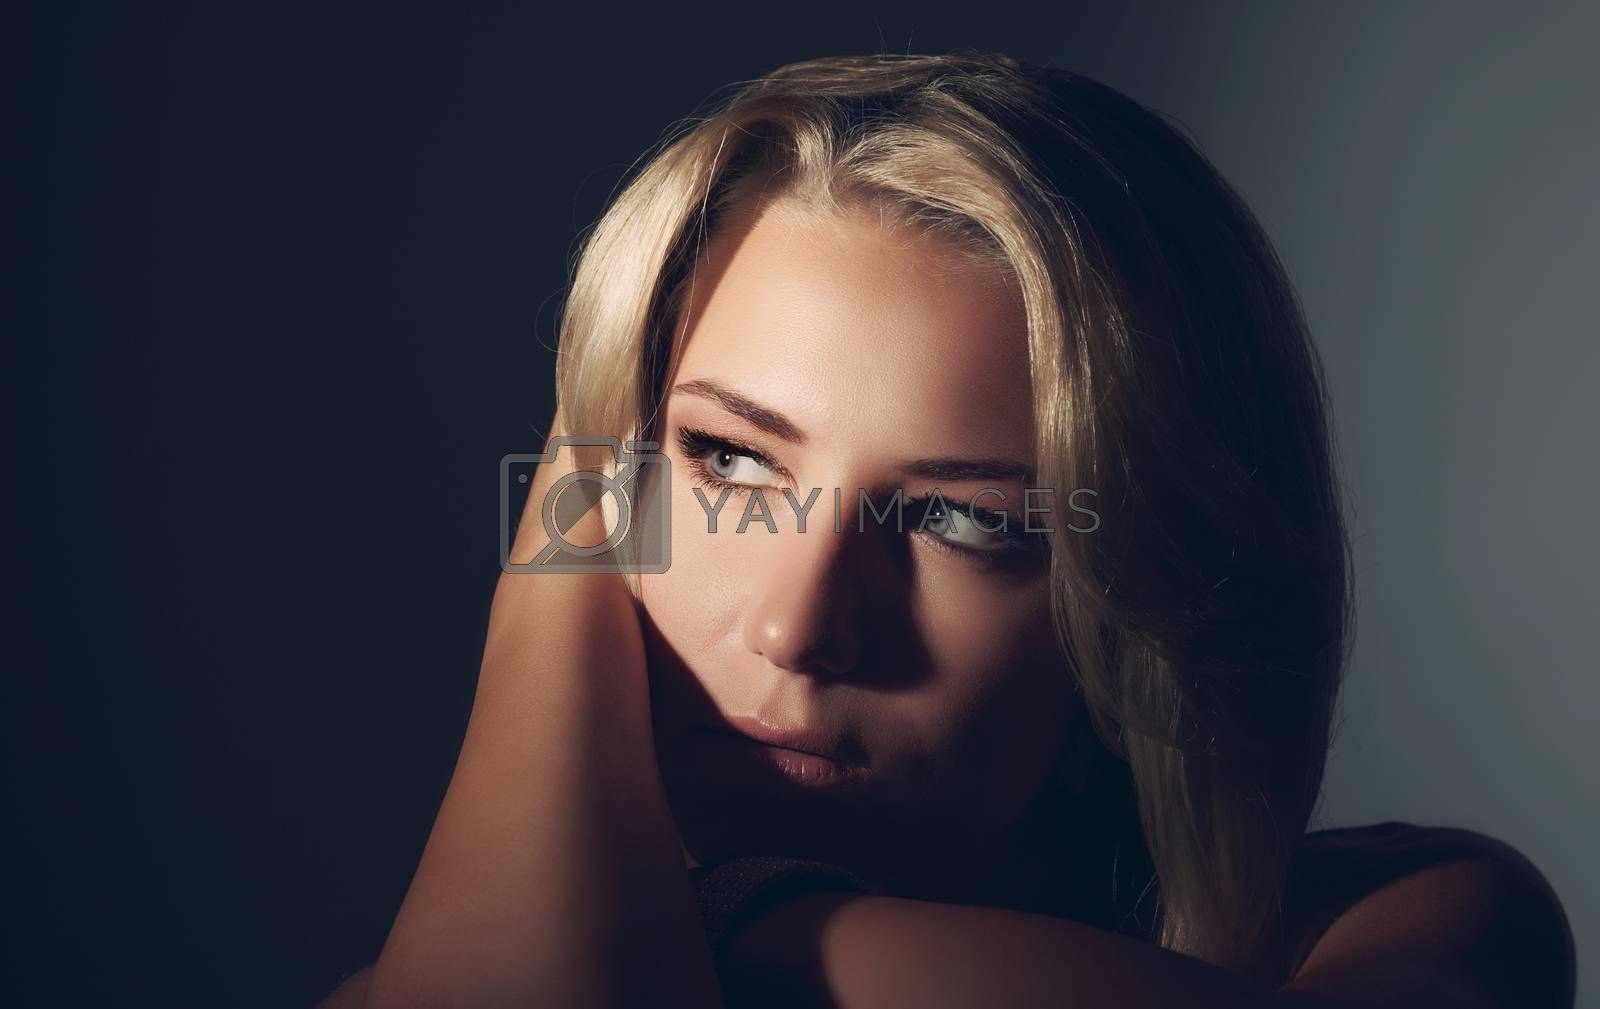 Closeup fashion portrait of a beautiful blond woman over dark background, sensual female with seductive look